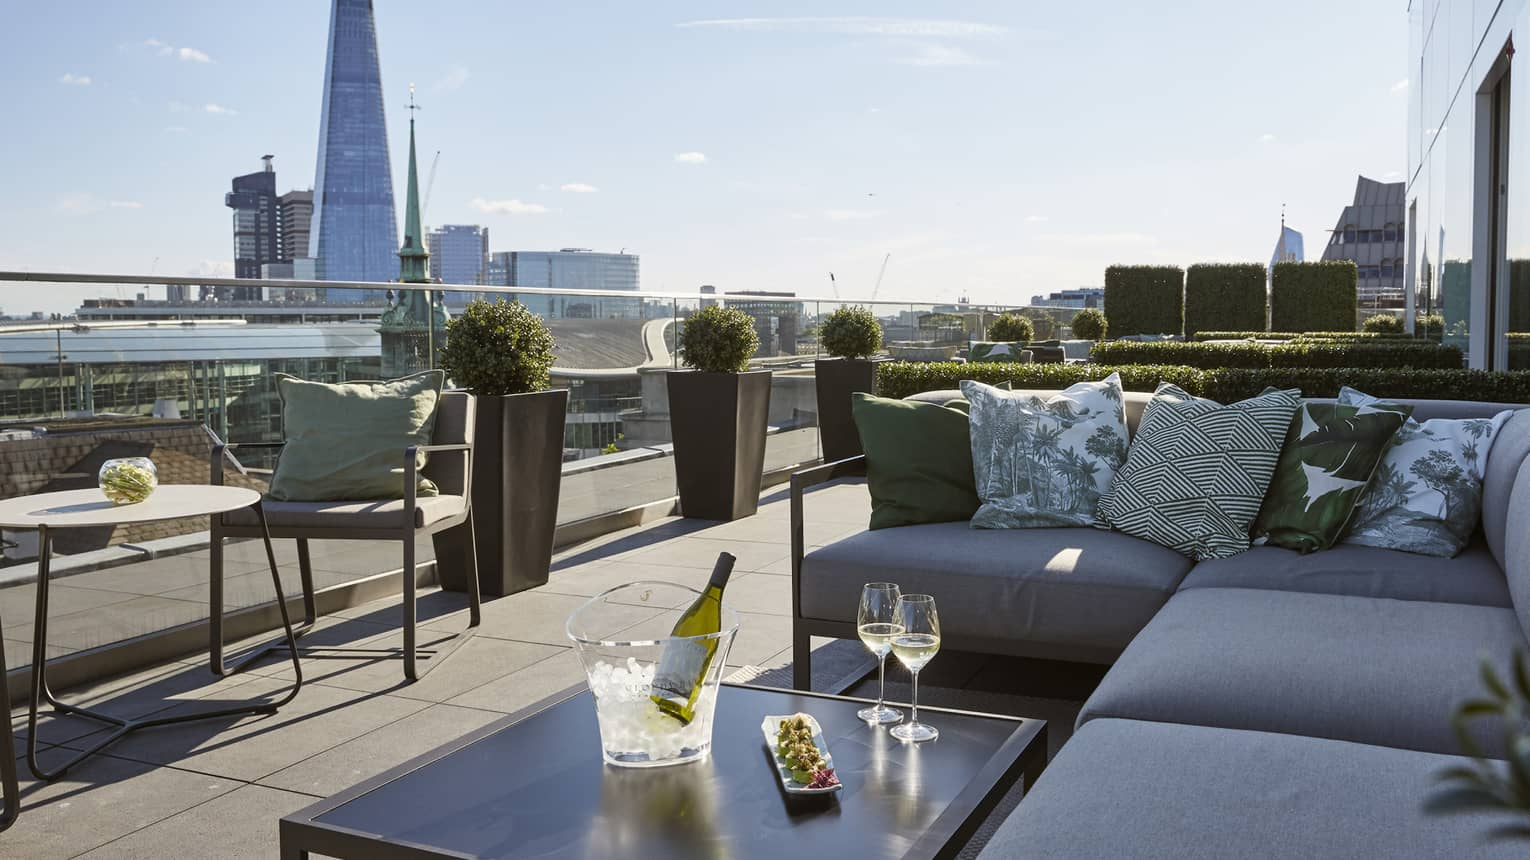 Sushi and chilled wine are arranged on an outdoor patio with a view of the London skyline